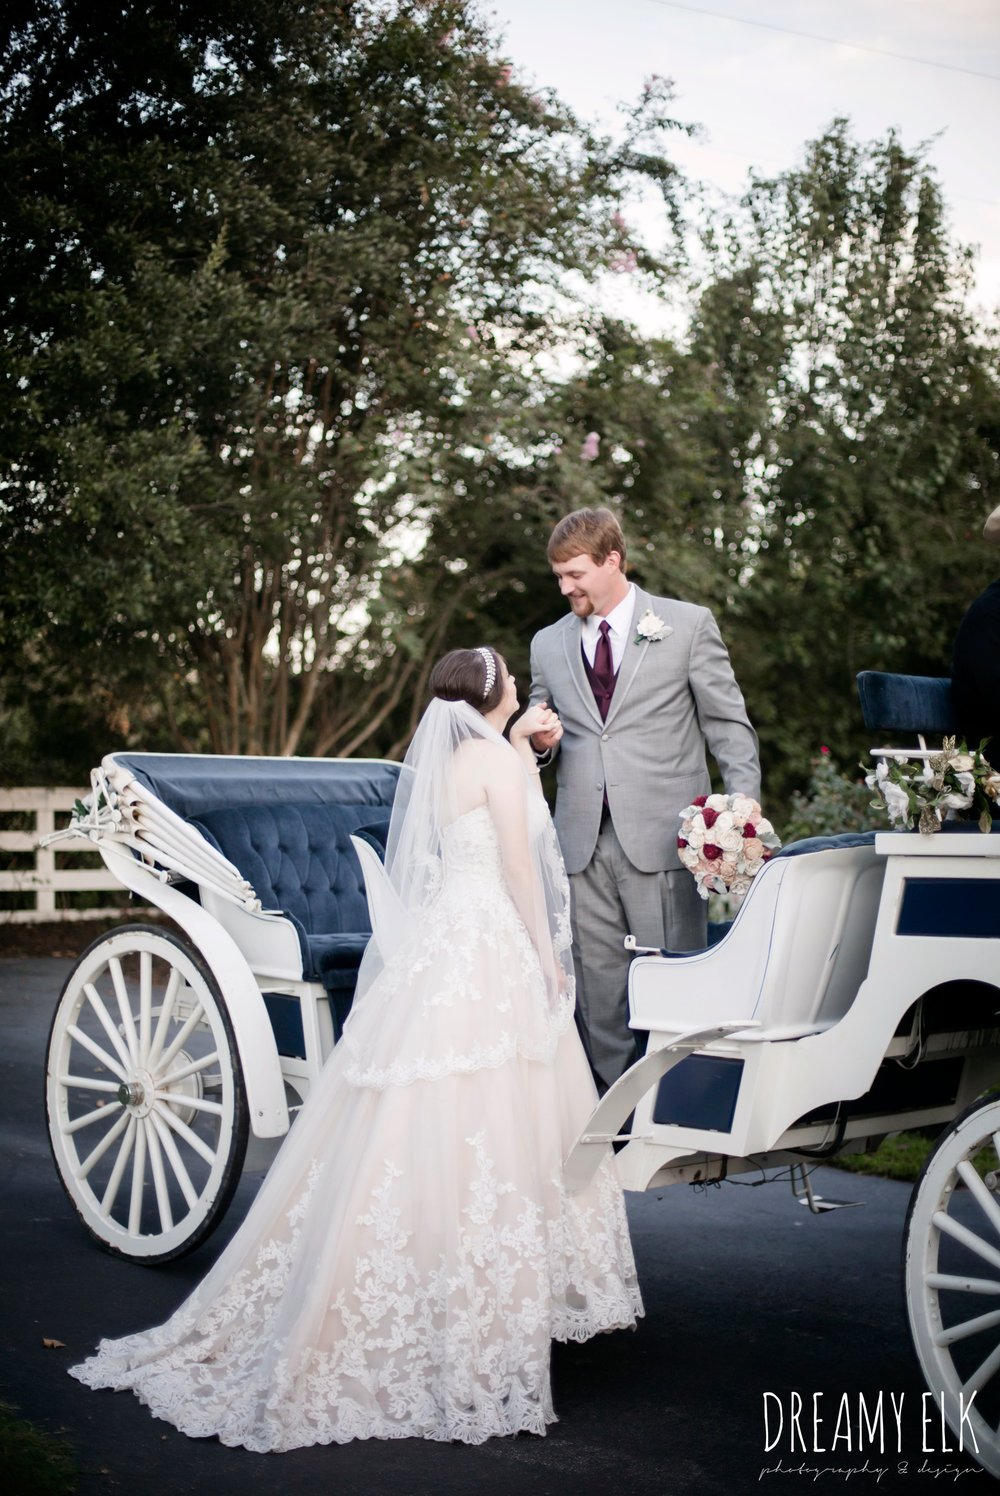 bride and groom in horse drawn carriage, classic carriage company, bride, sweetheart lace ballgown wedding dress, oyester underlay, lace trimmed veil, rhinestone headpiece, groom, men's wearhouse gray tux with maroon vest and tie, september wedding photo, ashelynn manor, magnolia, texas, austin texas wedding photographer {dreamy elk photography and design}